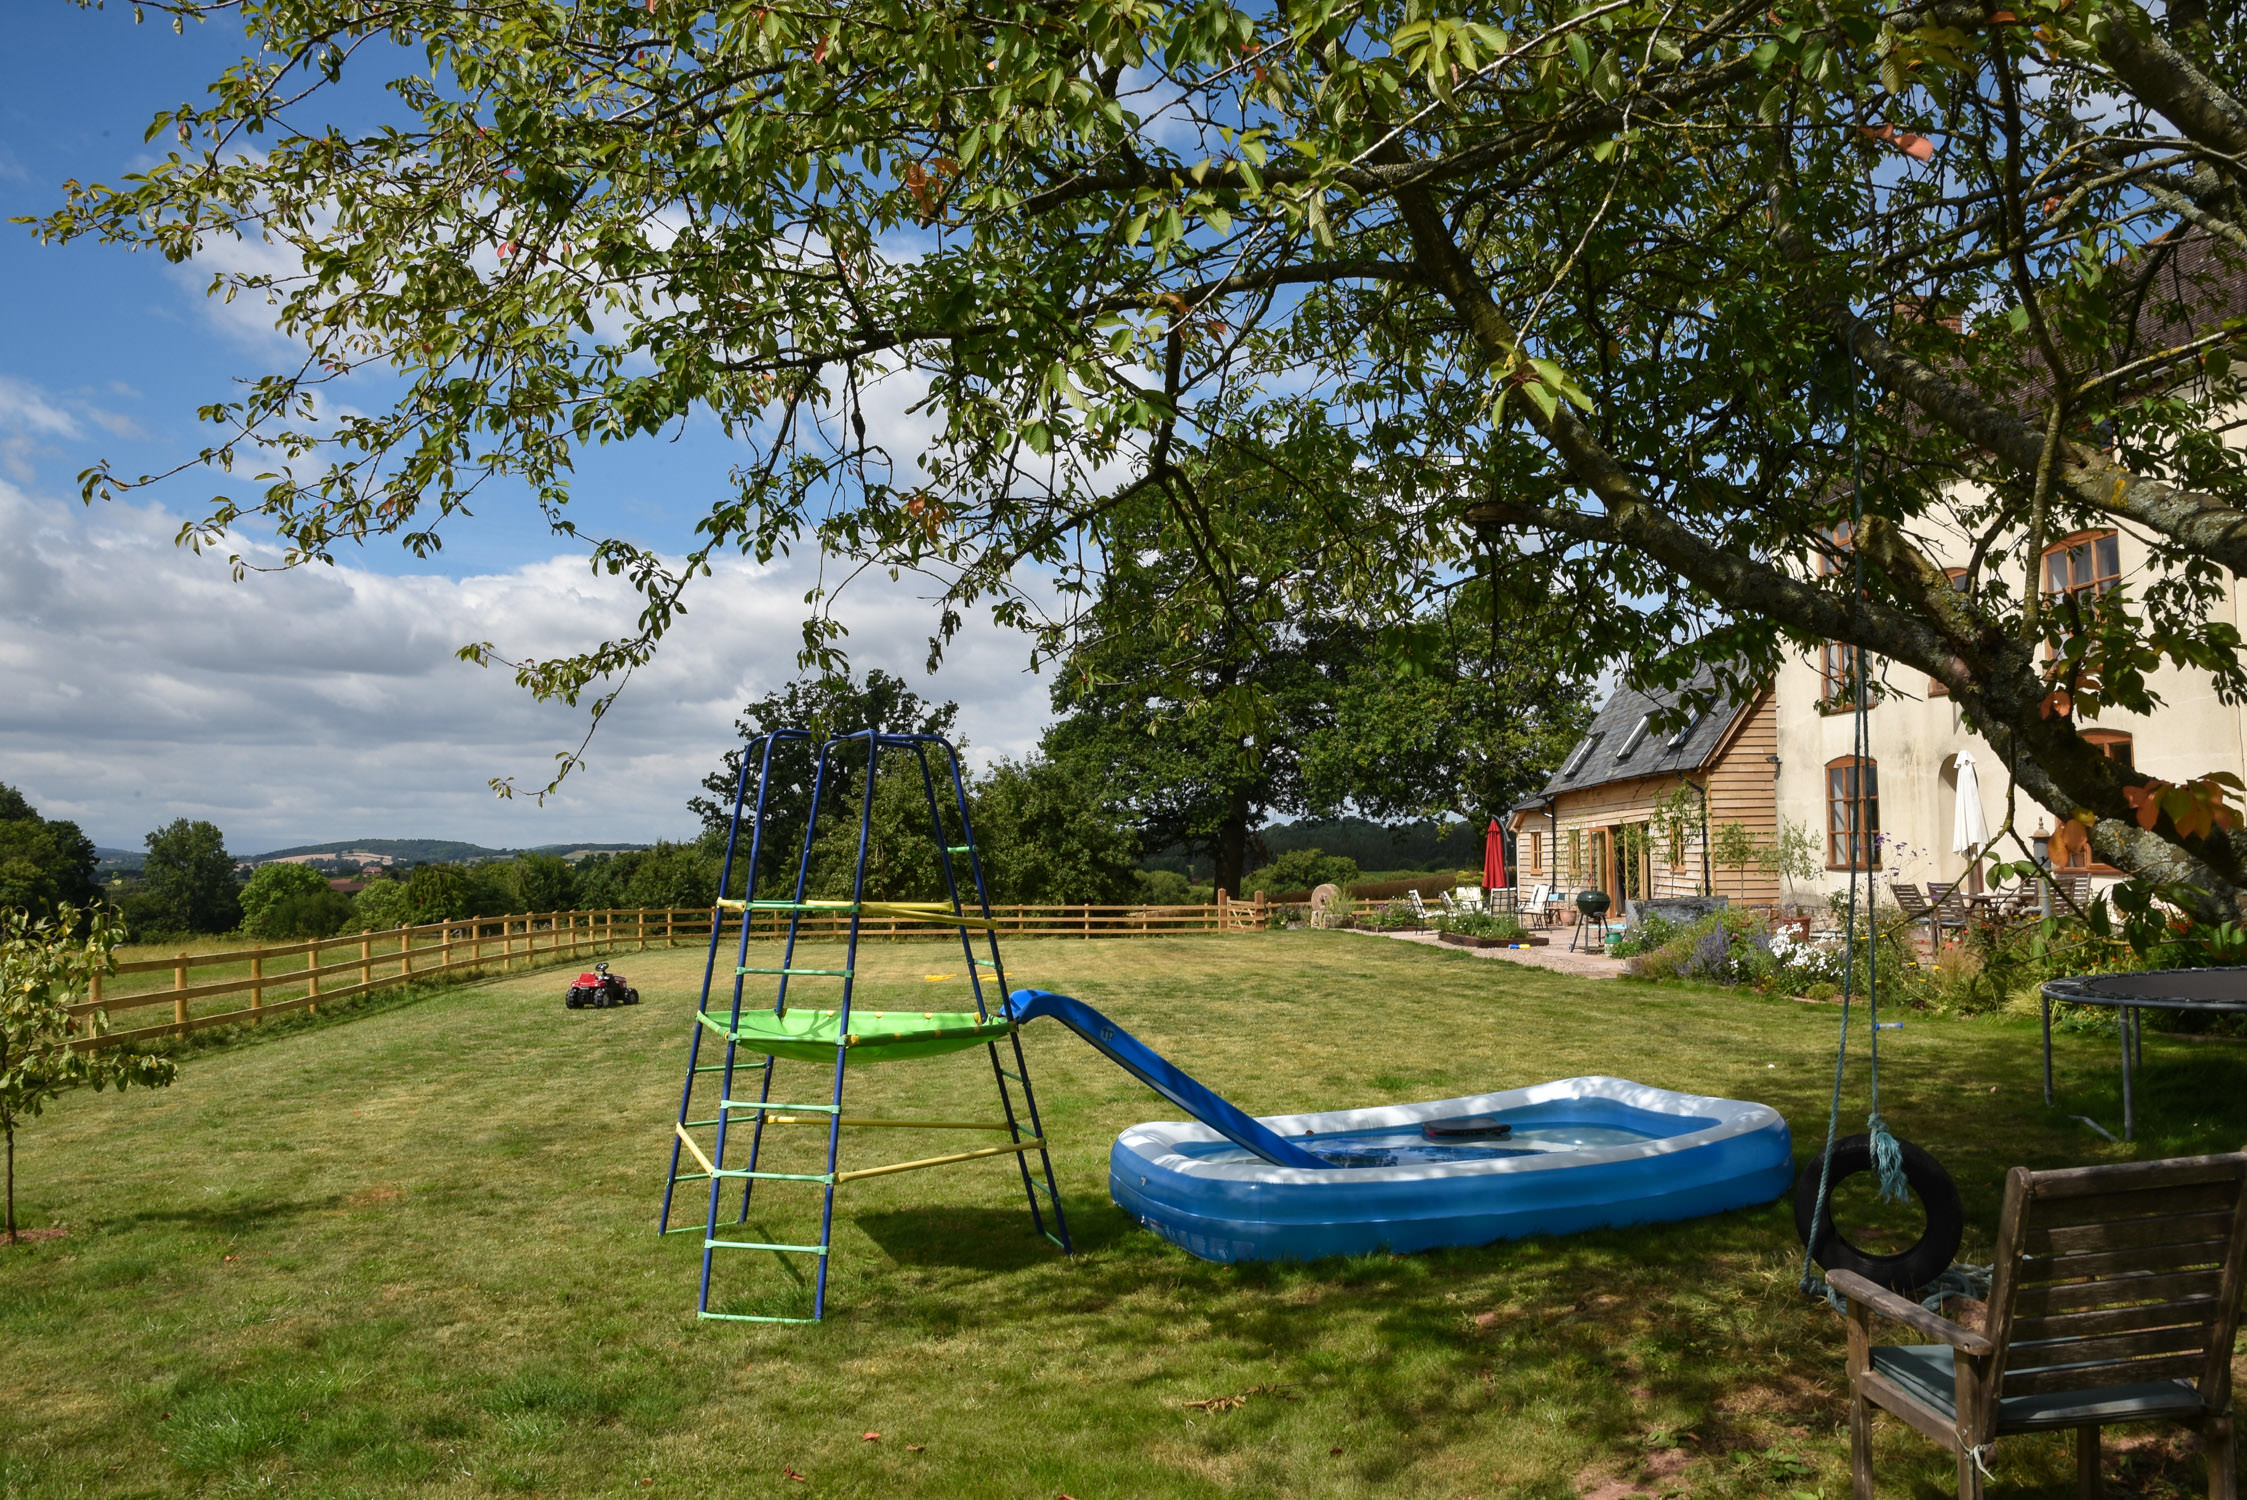 Holiday home garden with climbing frame and paddling pool